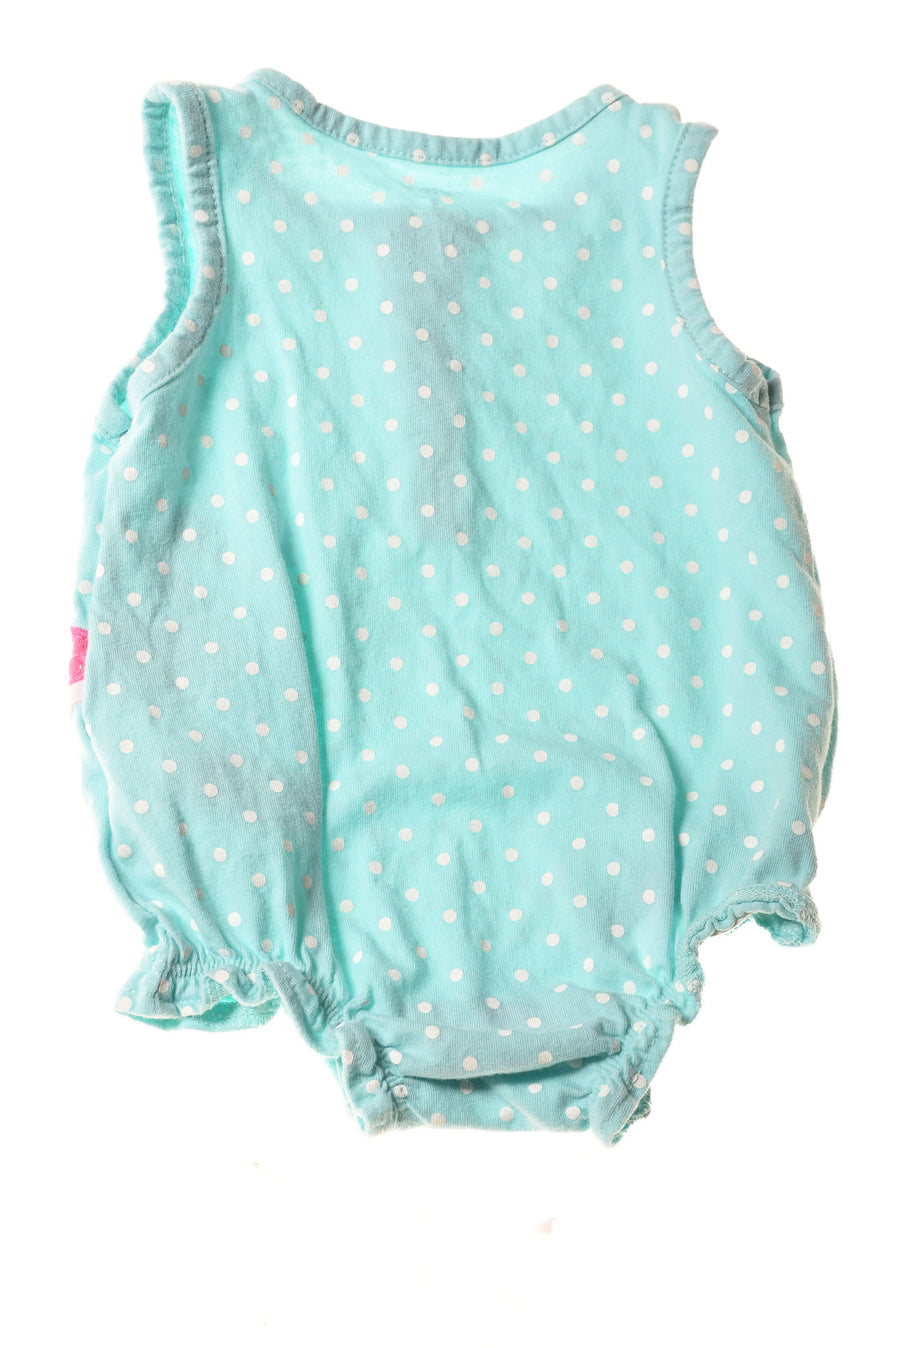 Baby Girl's Outfit By Carter's